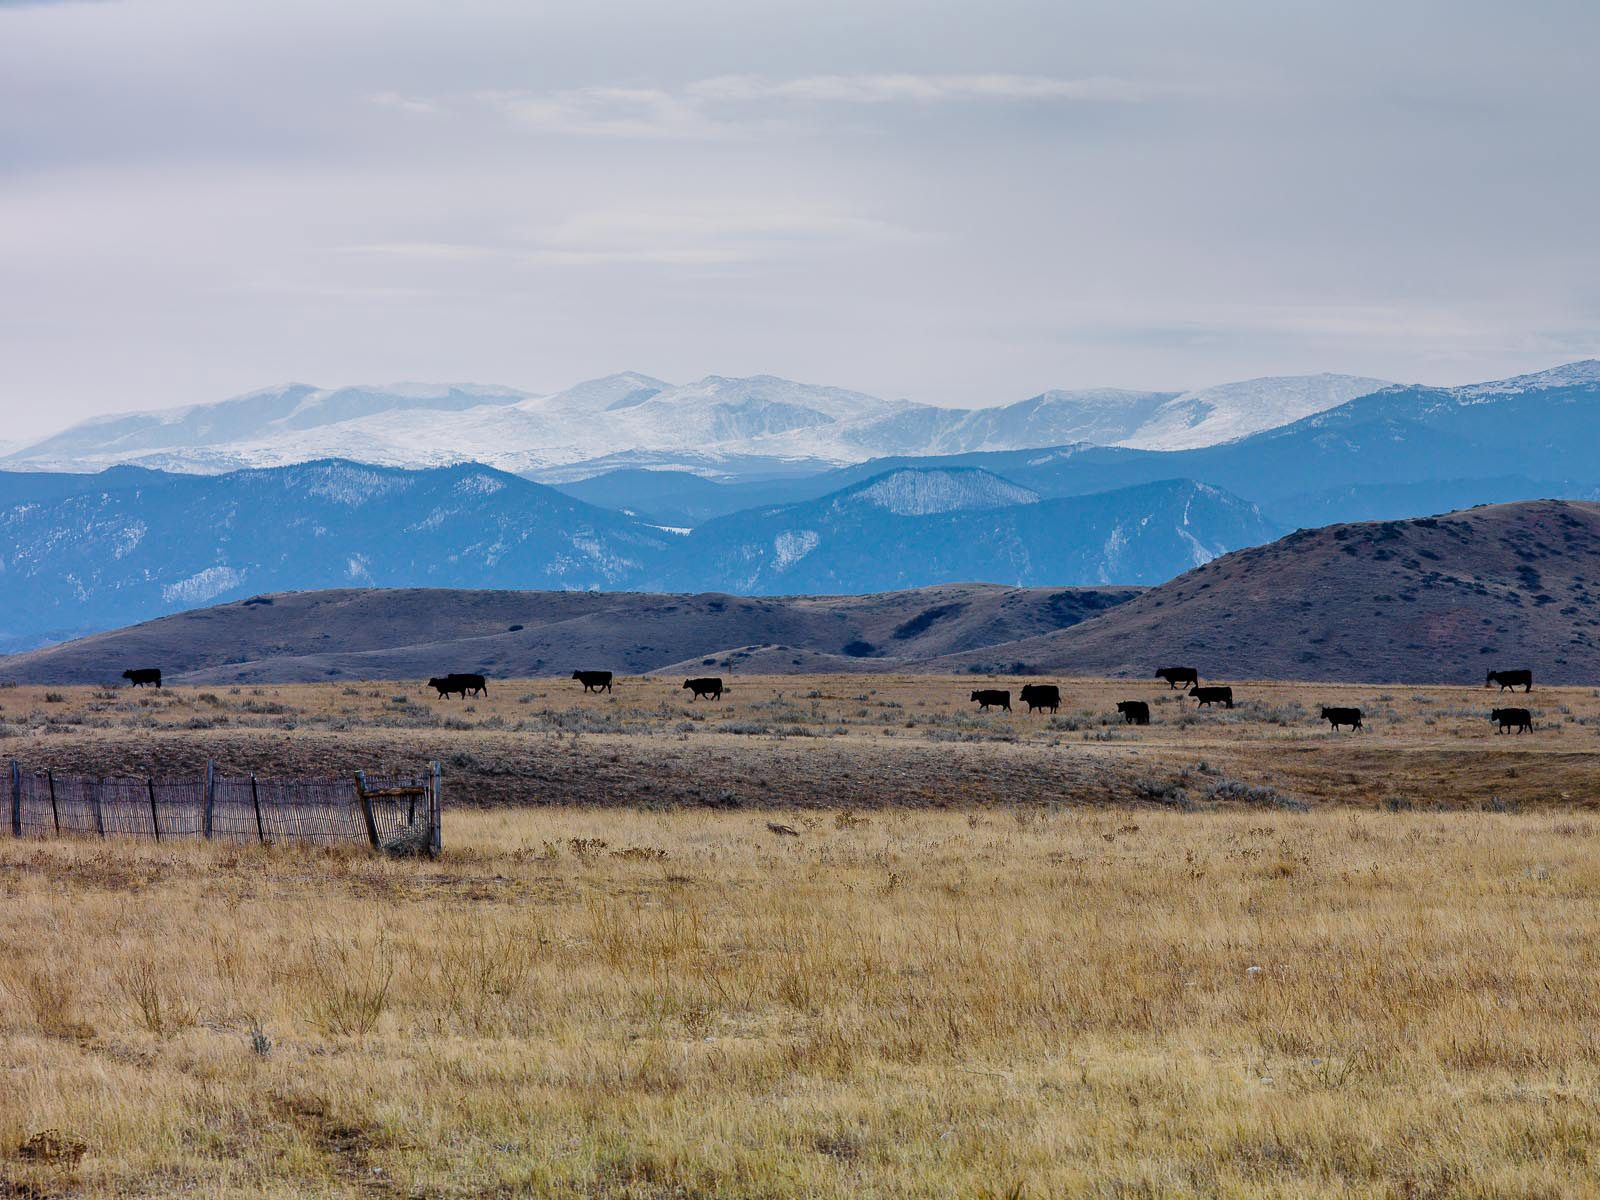 Cattle Grazing in the Shadow of the Big Horn Mountains